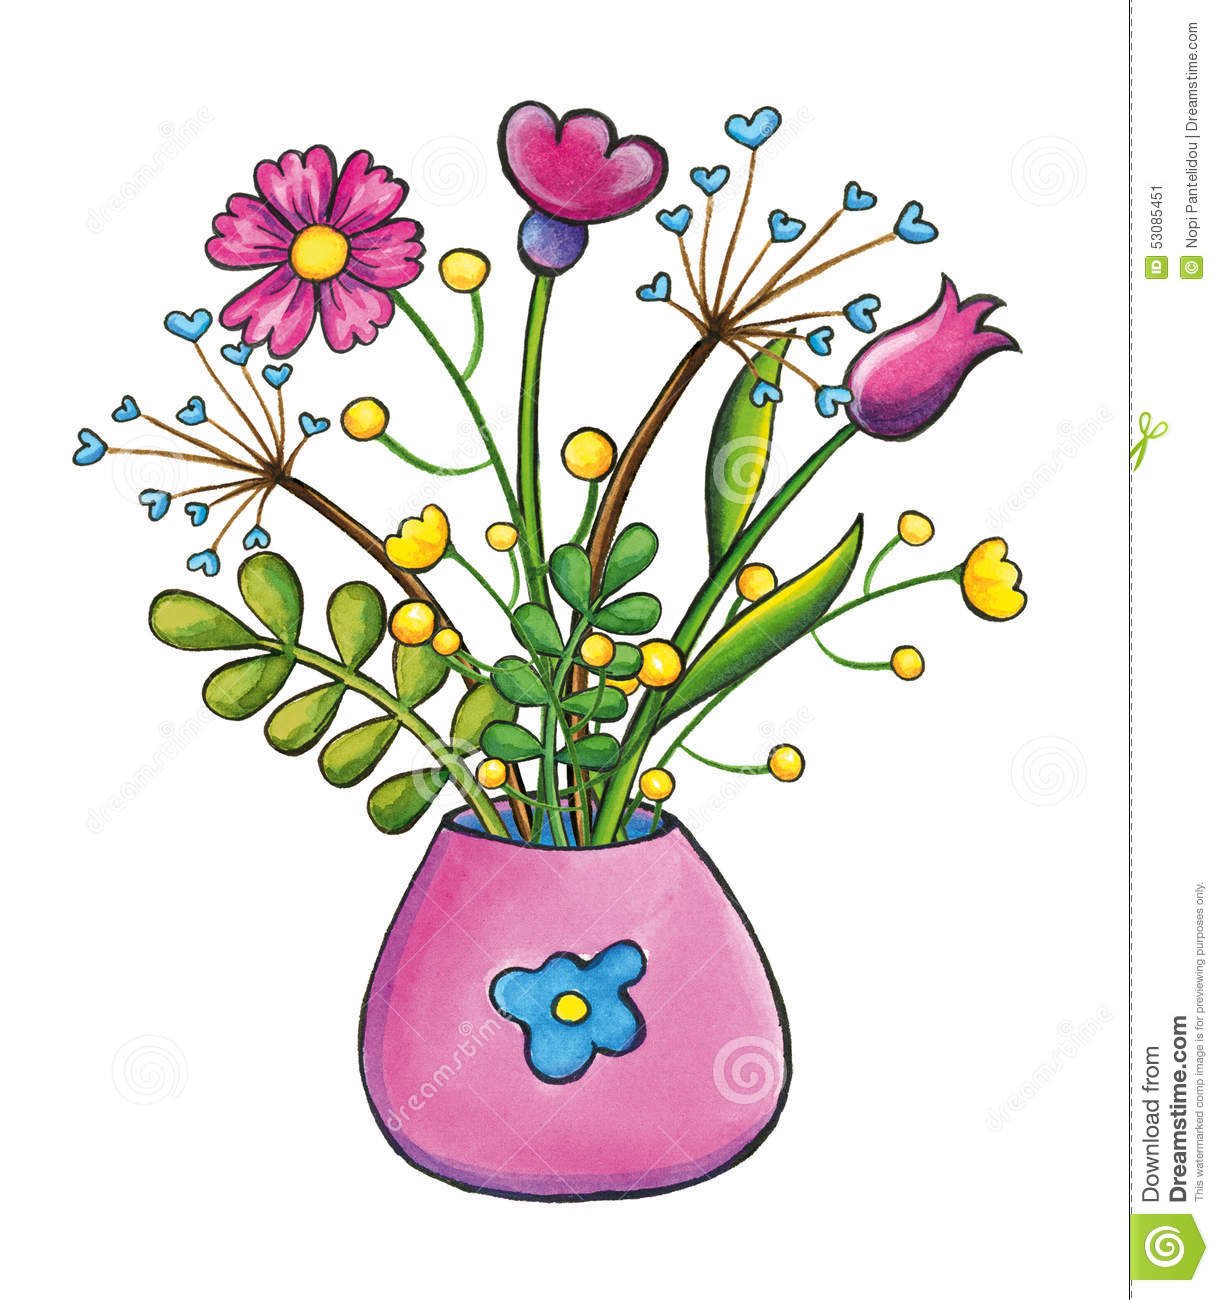 Flores Clipart Group with 88+ items.